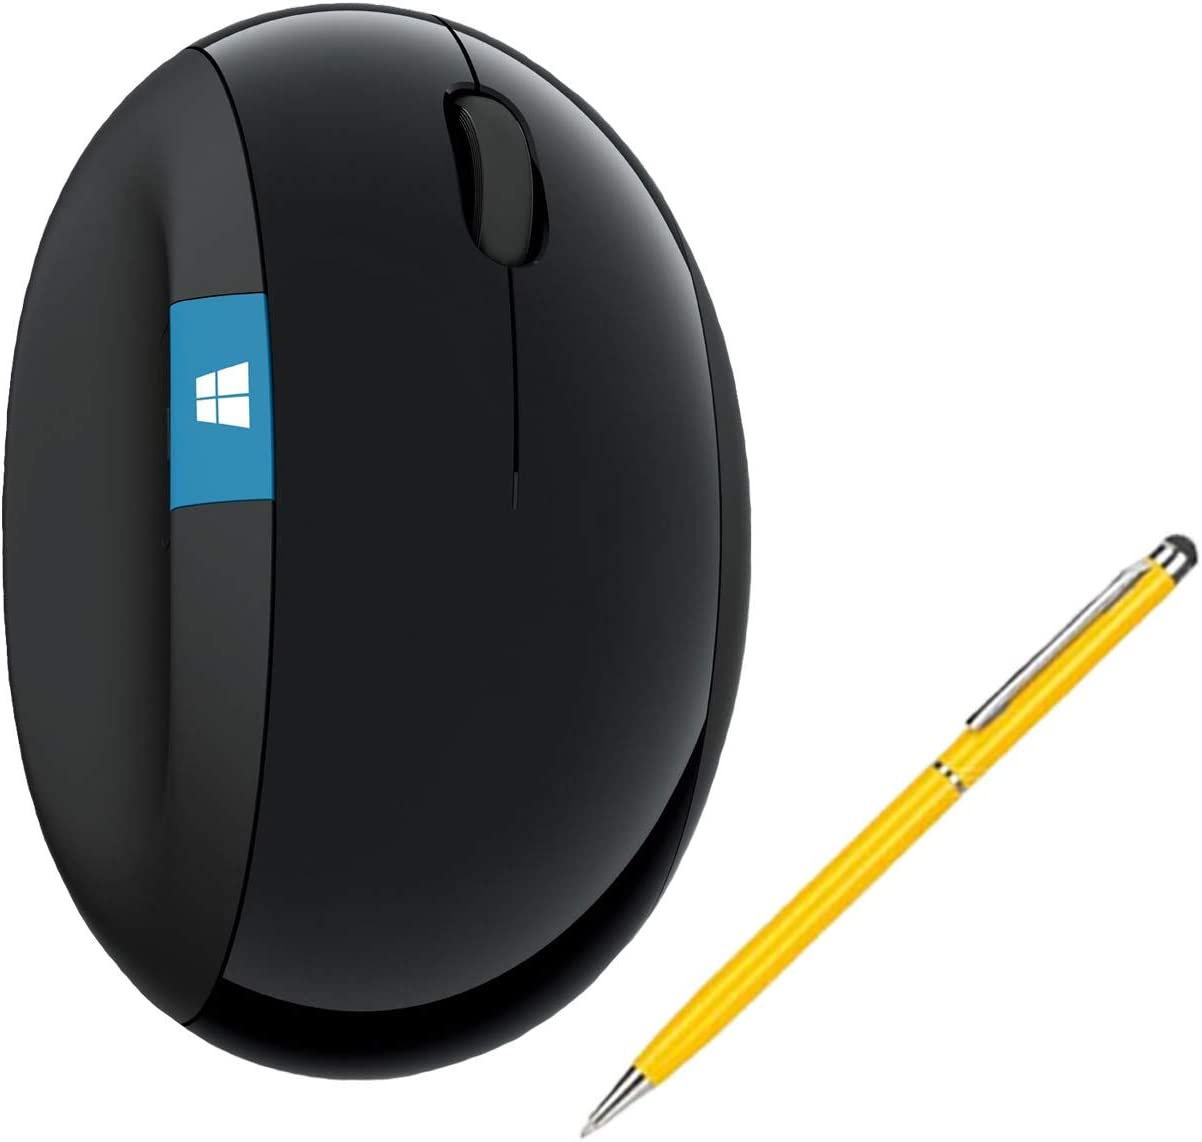 Microsoft Sculpt Wireless Ergonomic Mouse Bundle for Computers and Laptops with Fast Scrolling (L6V-00001) (1-Pack + Stylus)